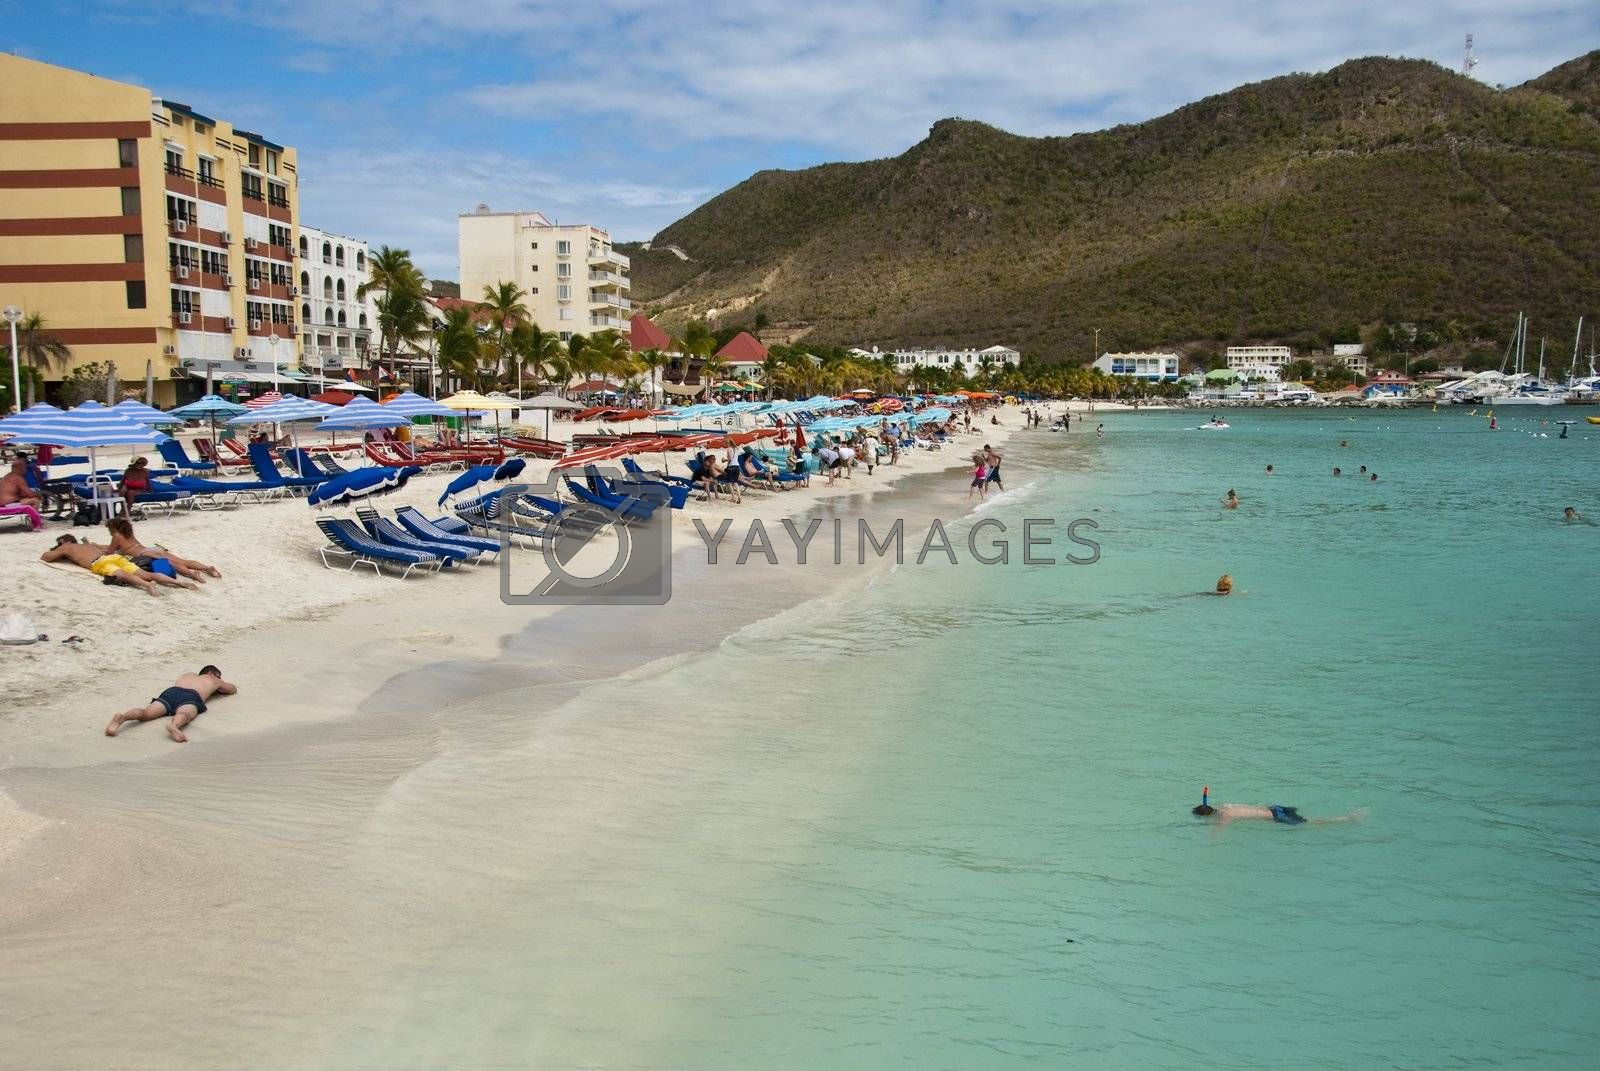 Coast in Saint Maarten Island, Dutch Antilles by jovannig